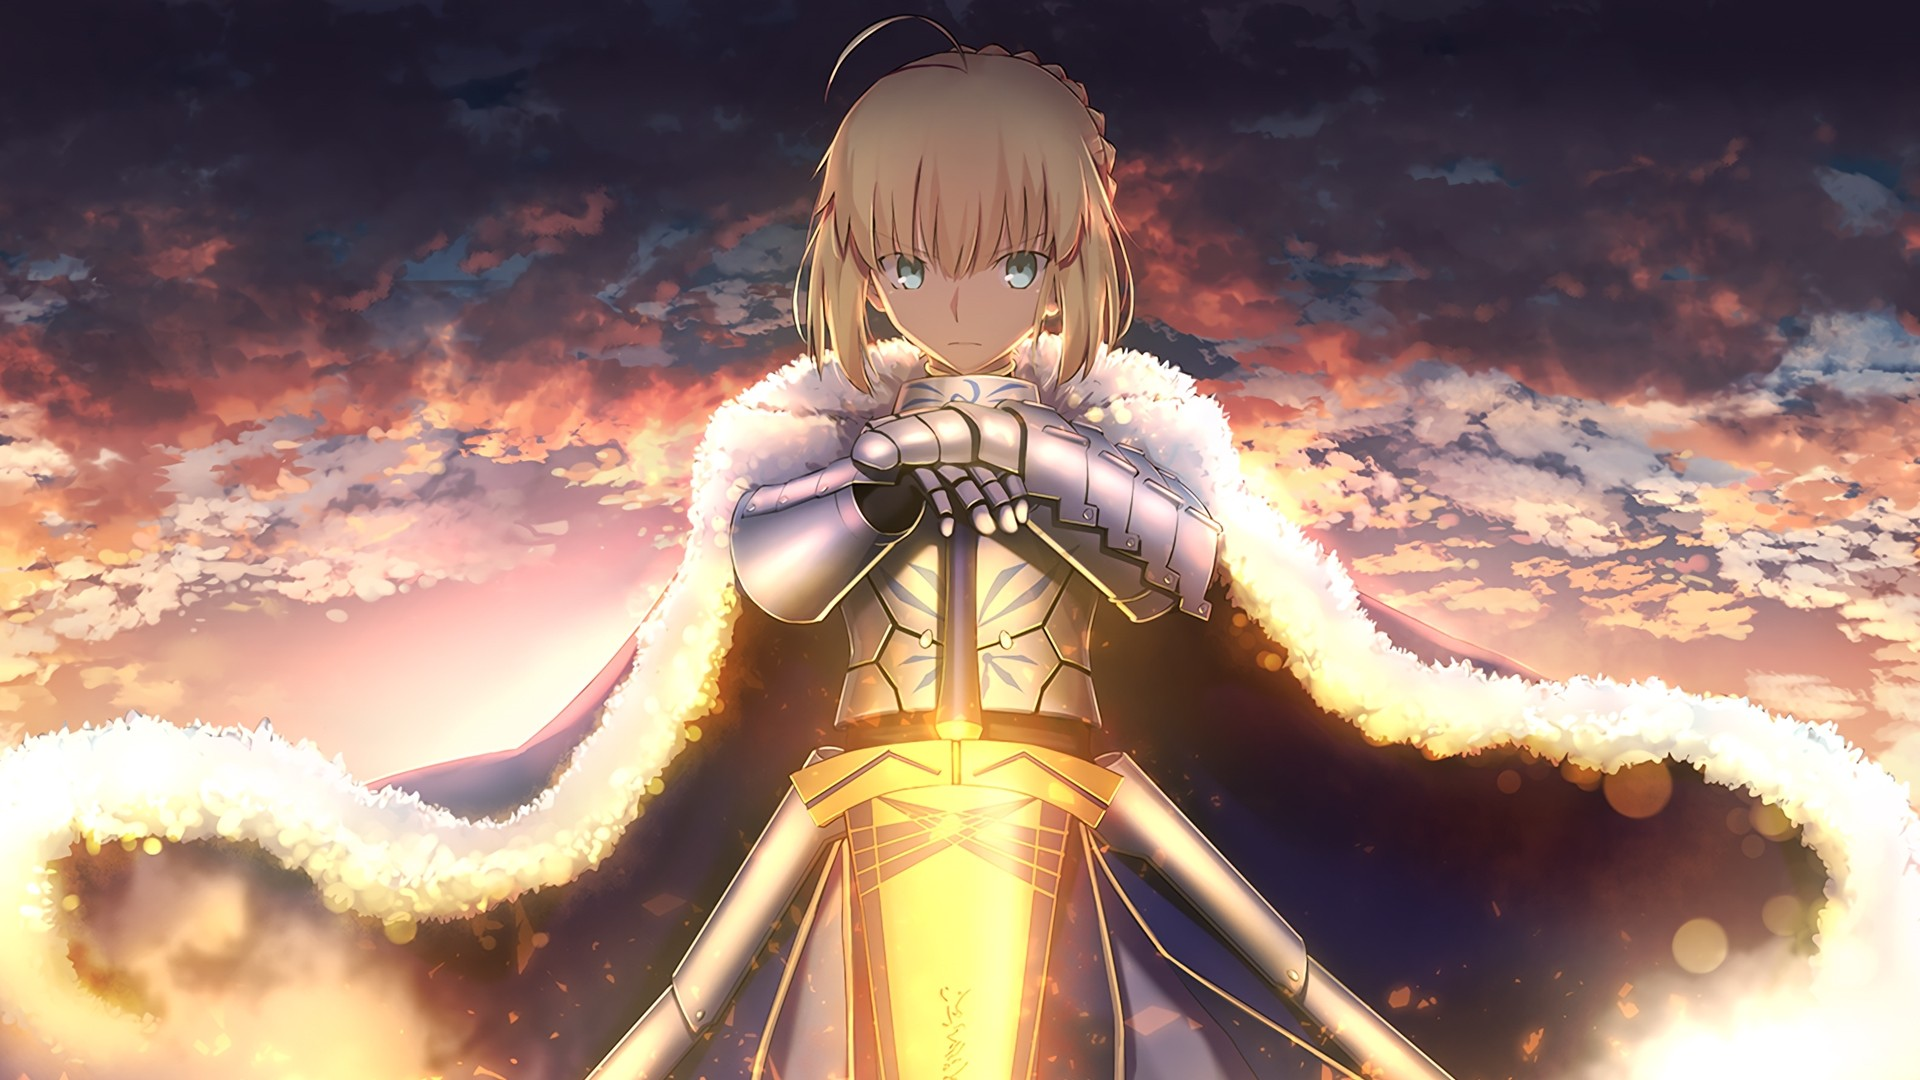 Fate Stay Night Saber Wallpaper 1920x1080